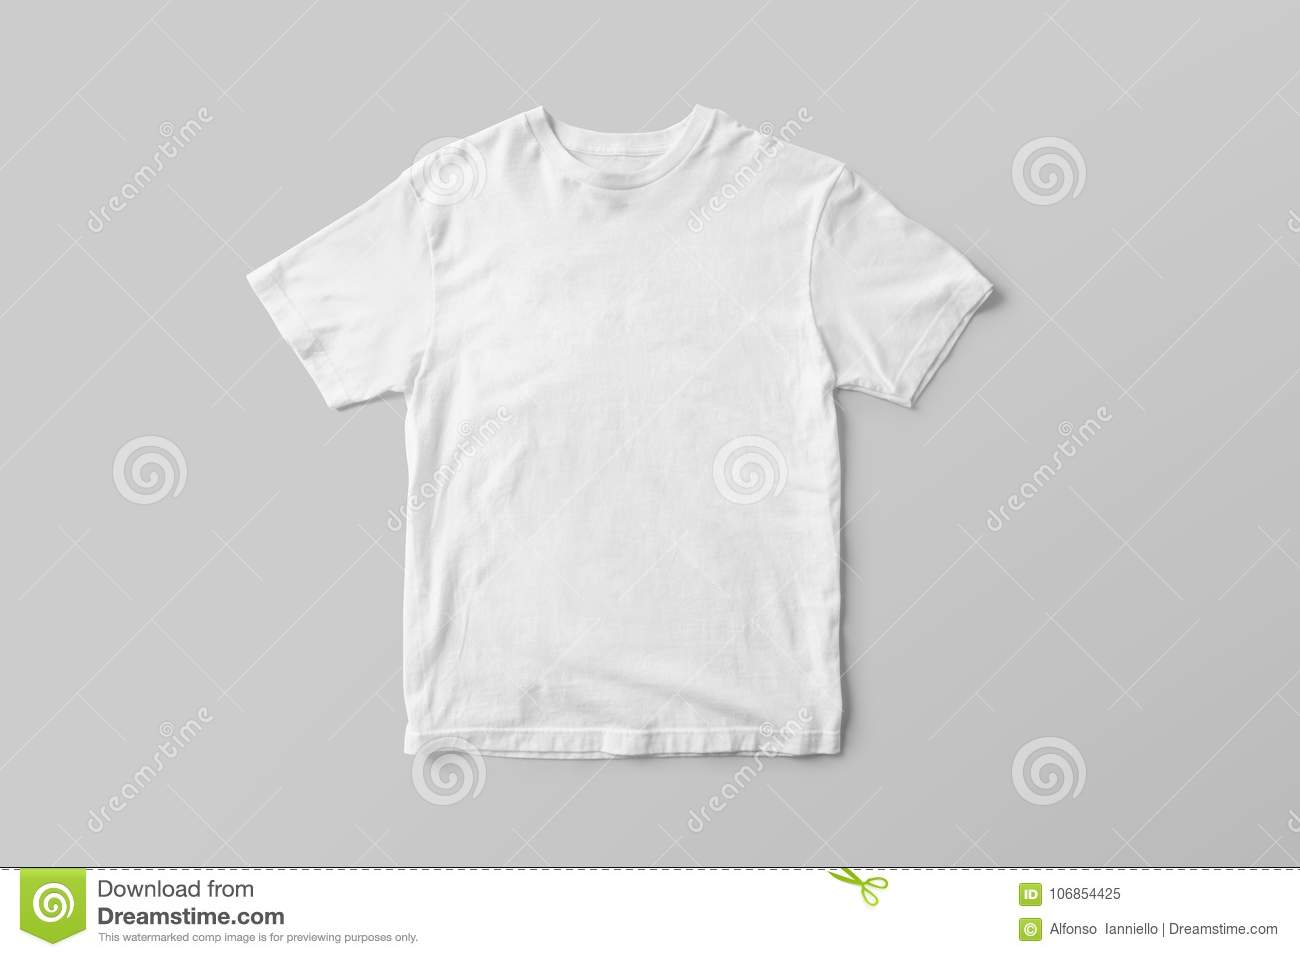 Blank White T-Shirt Mock-up on grey background, front side view.